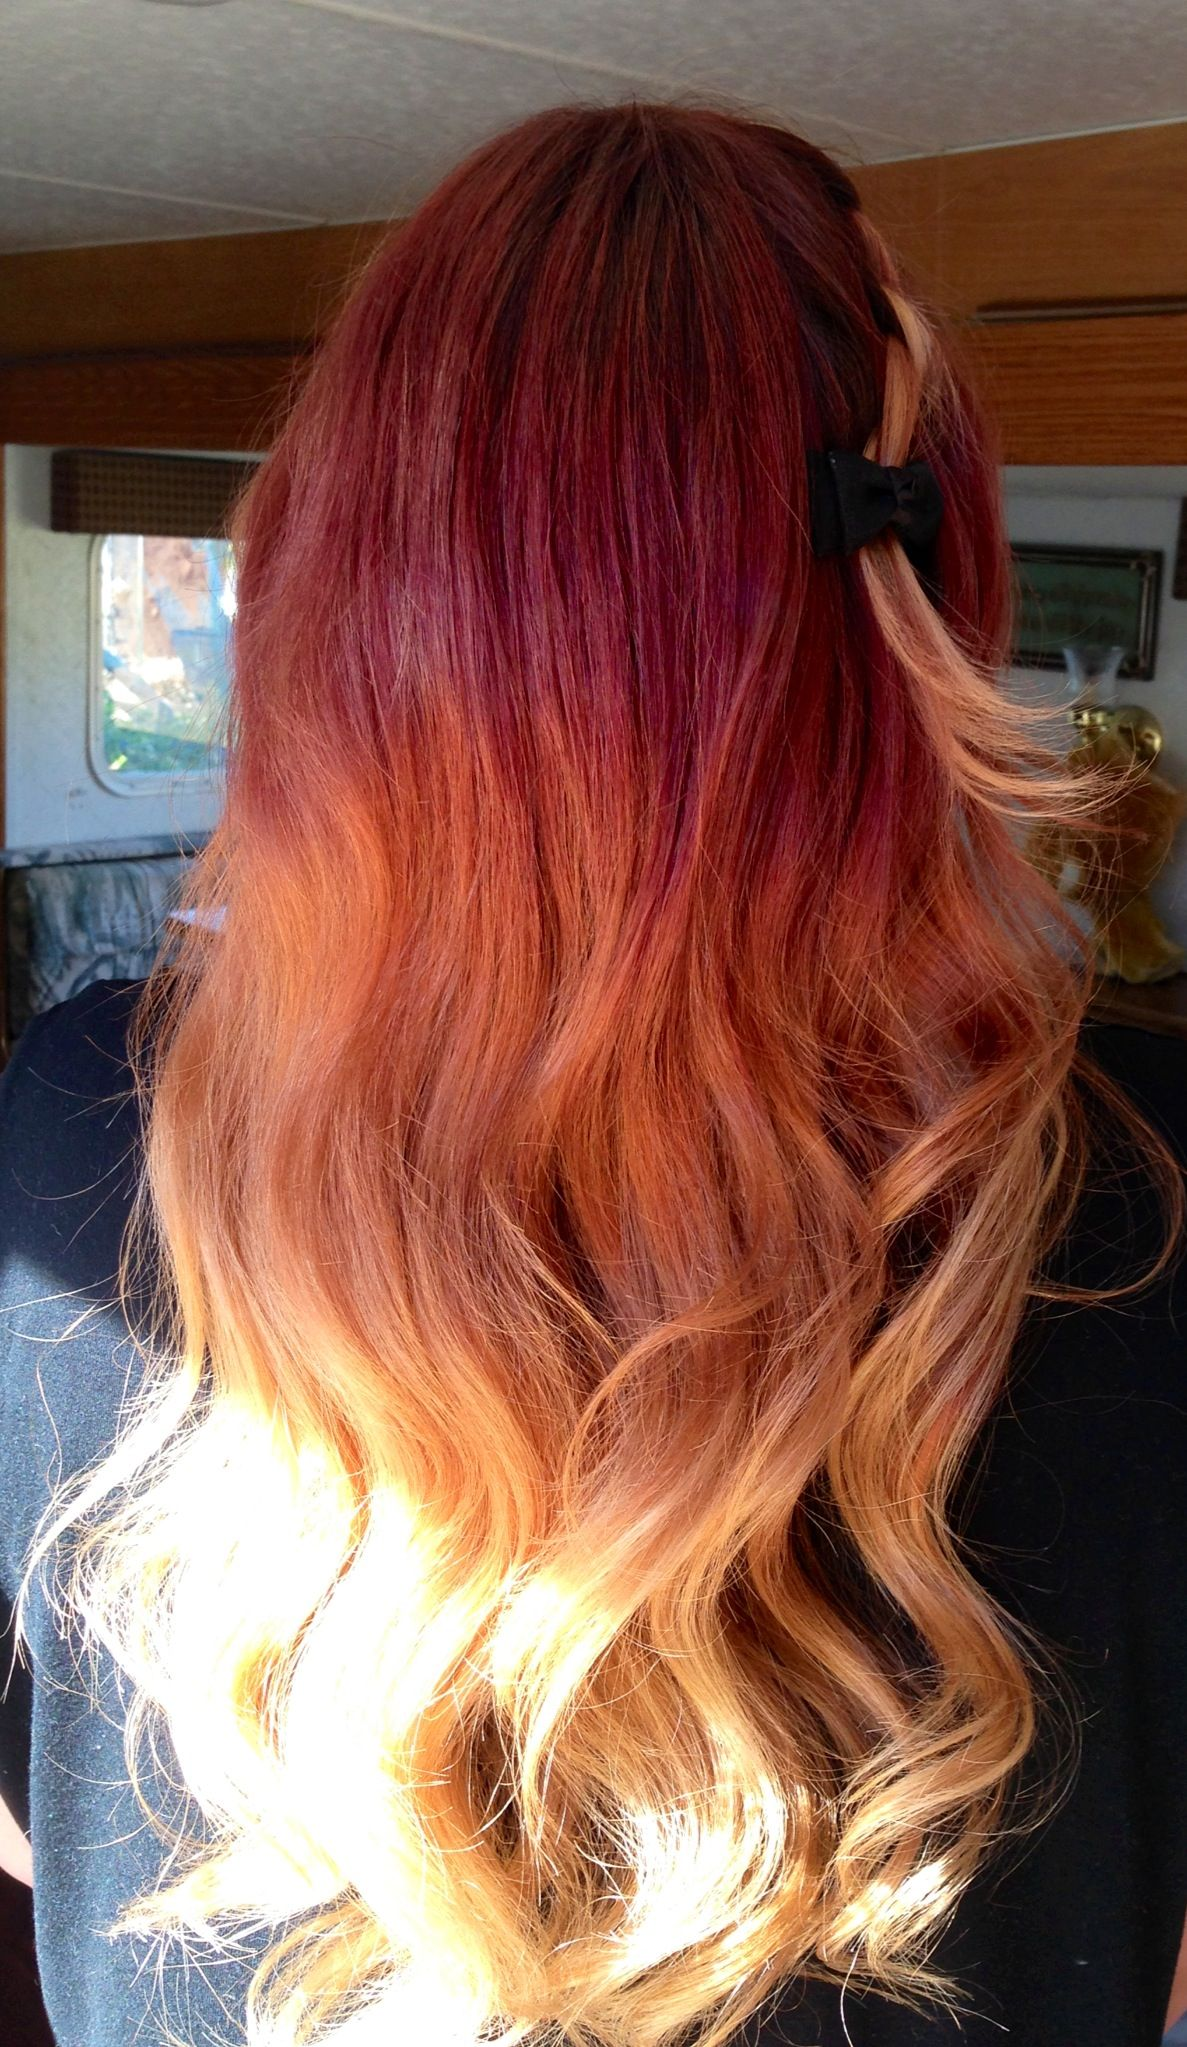 red to blonde ombre hair. i like the mid to lower portion of